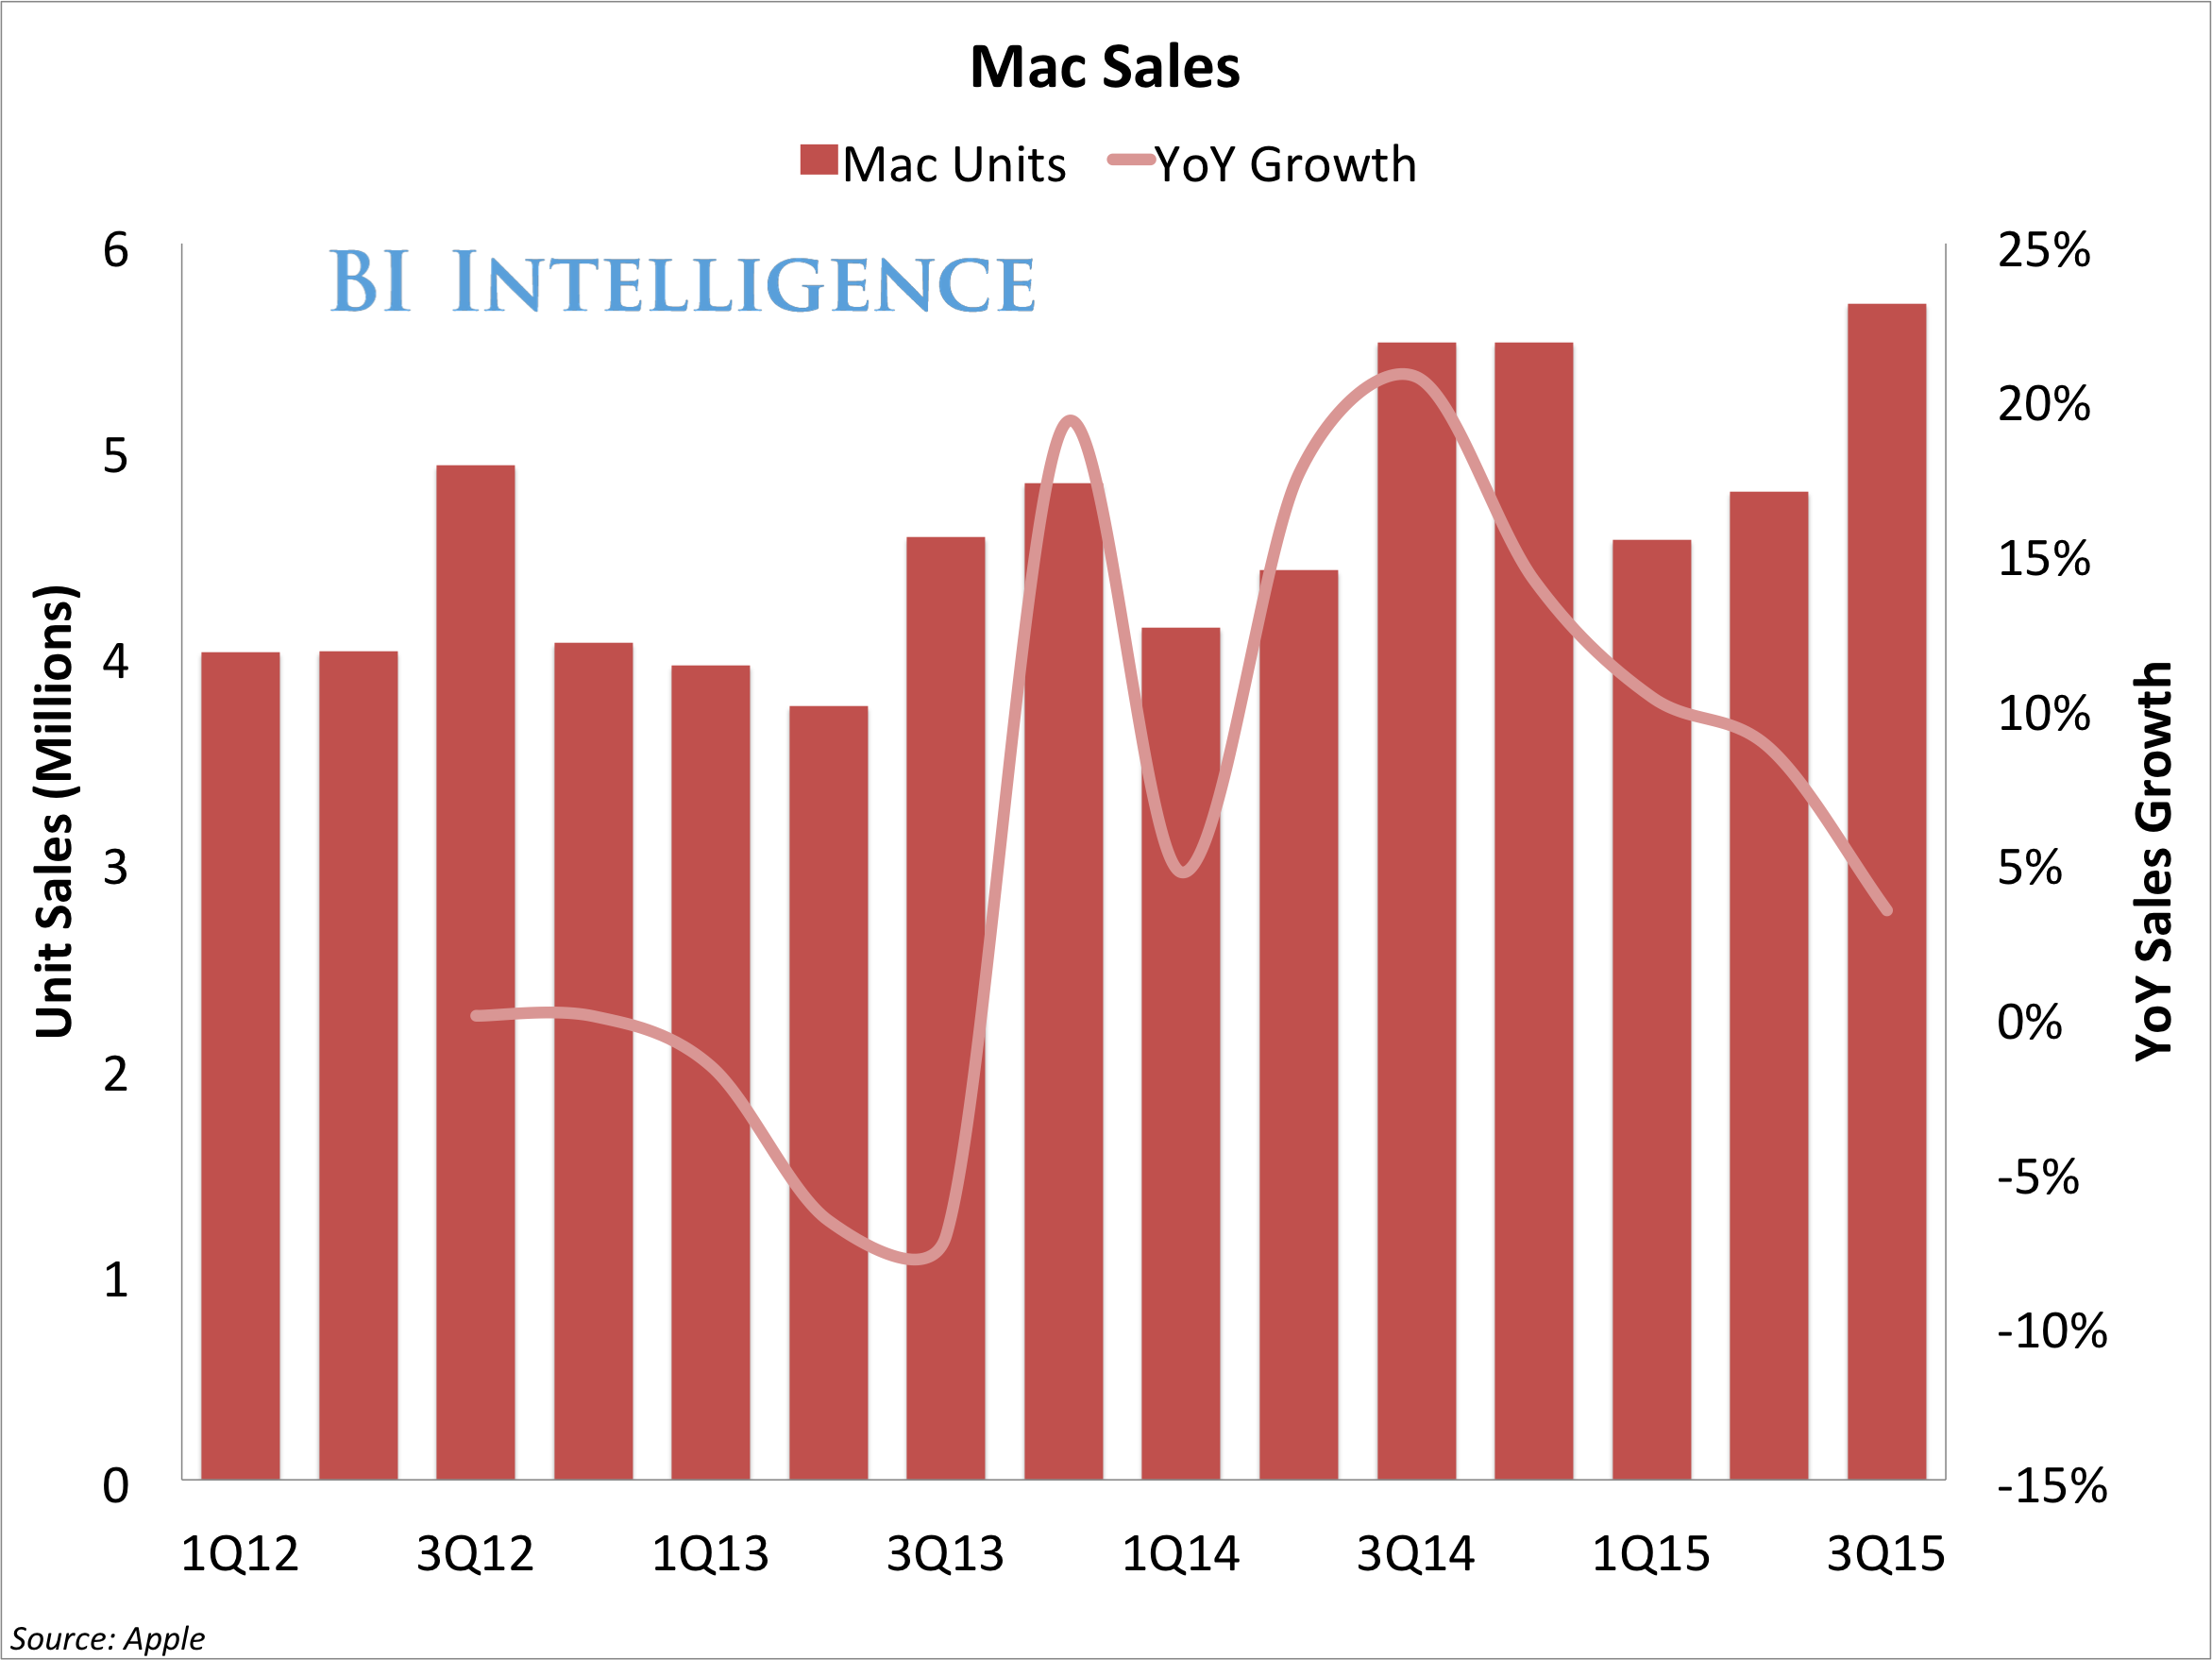 apple mac sales yoy growth 3q15